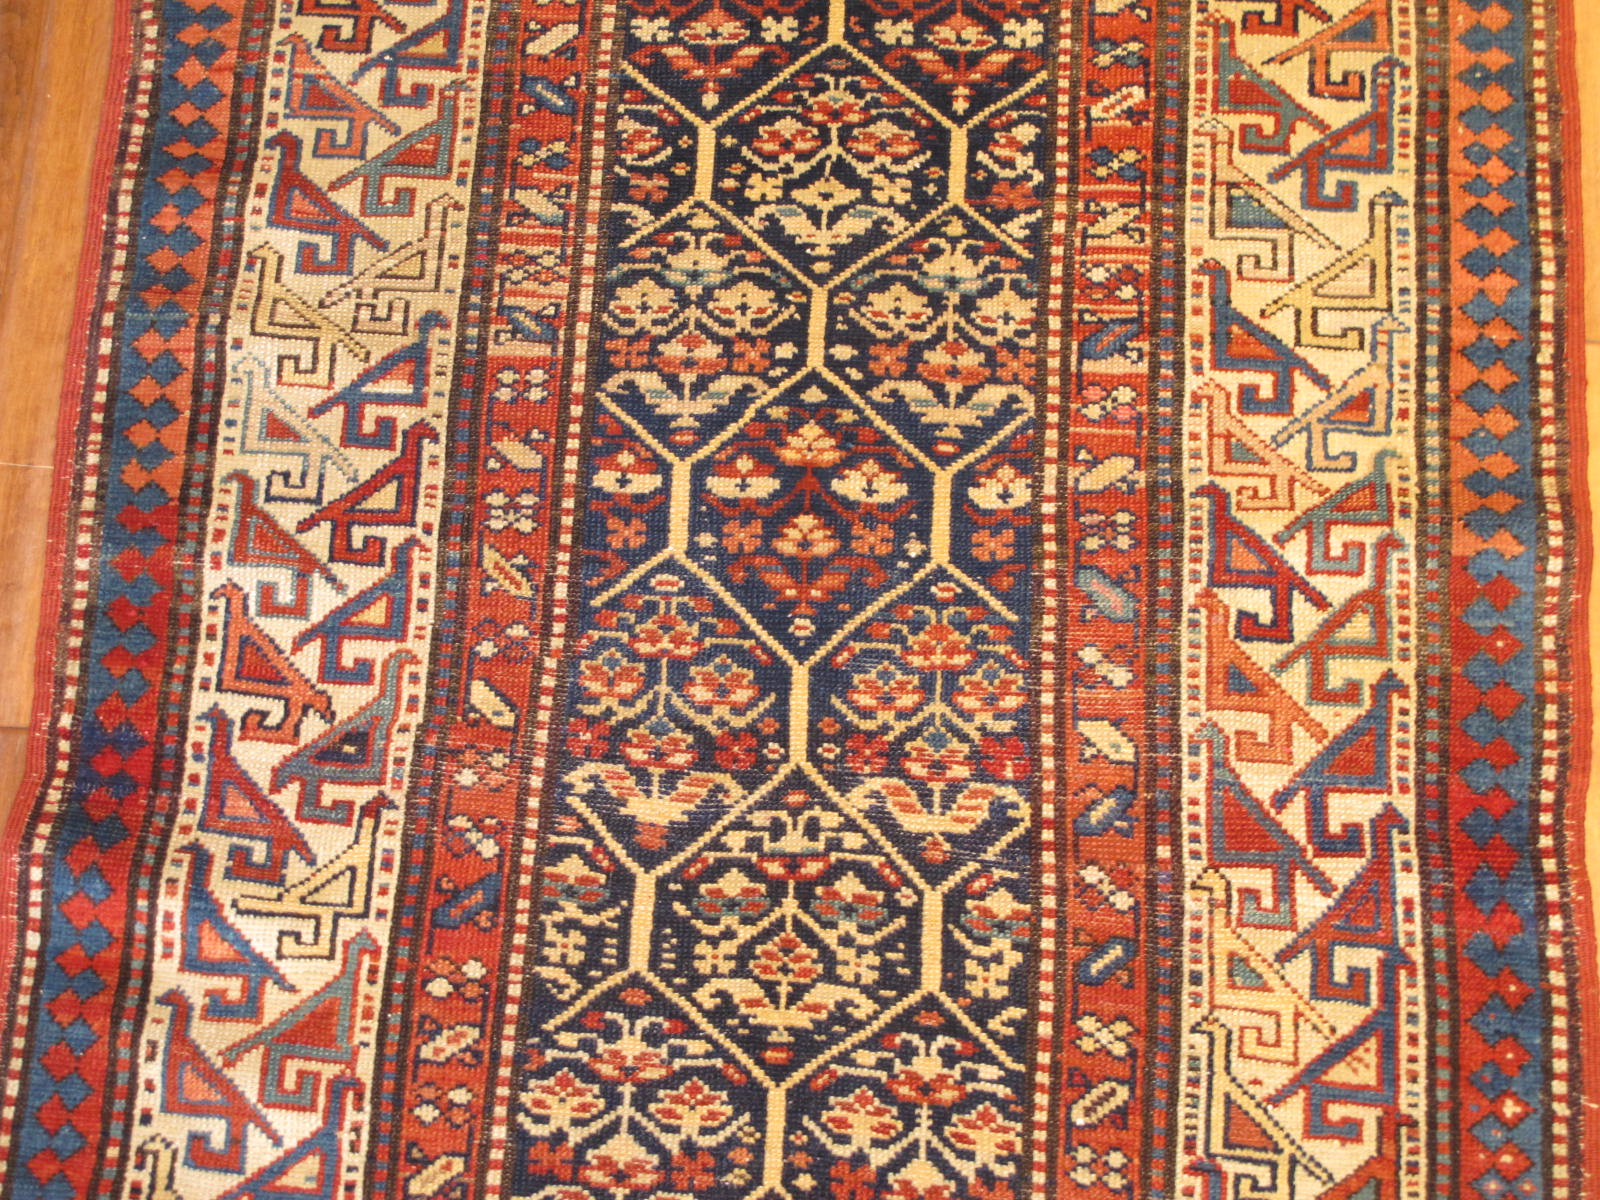 23201 antique caucasian shirvan runner 3,2 x 10,3 (2)